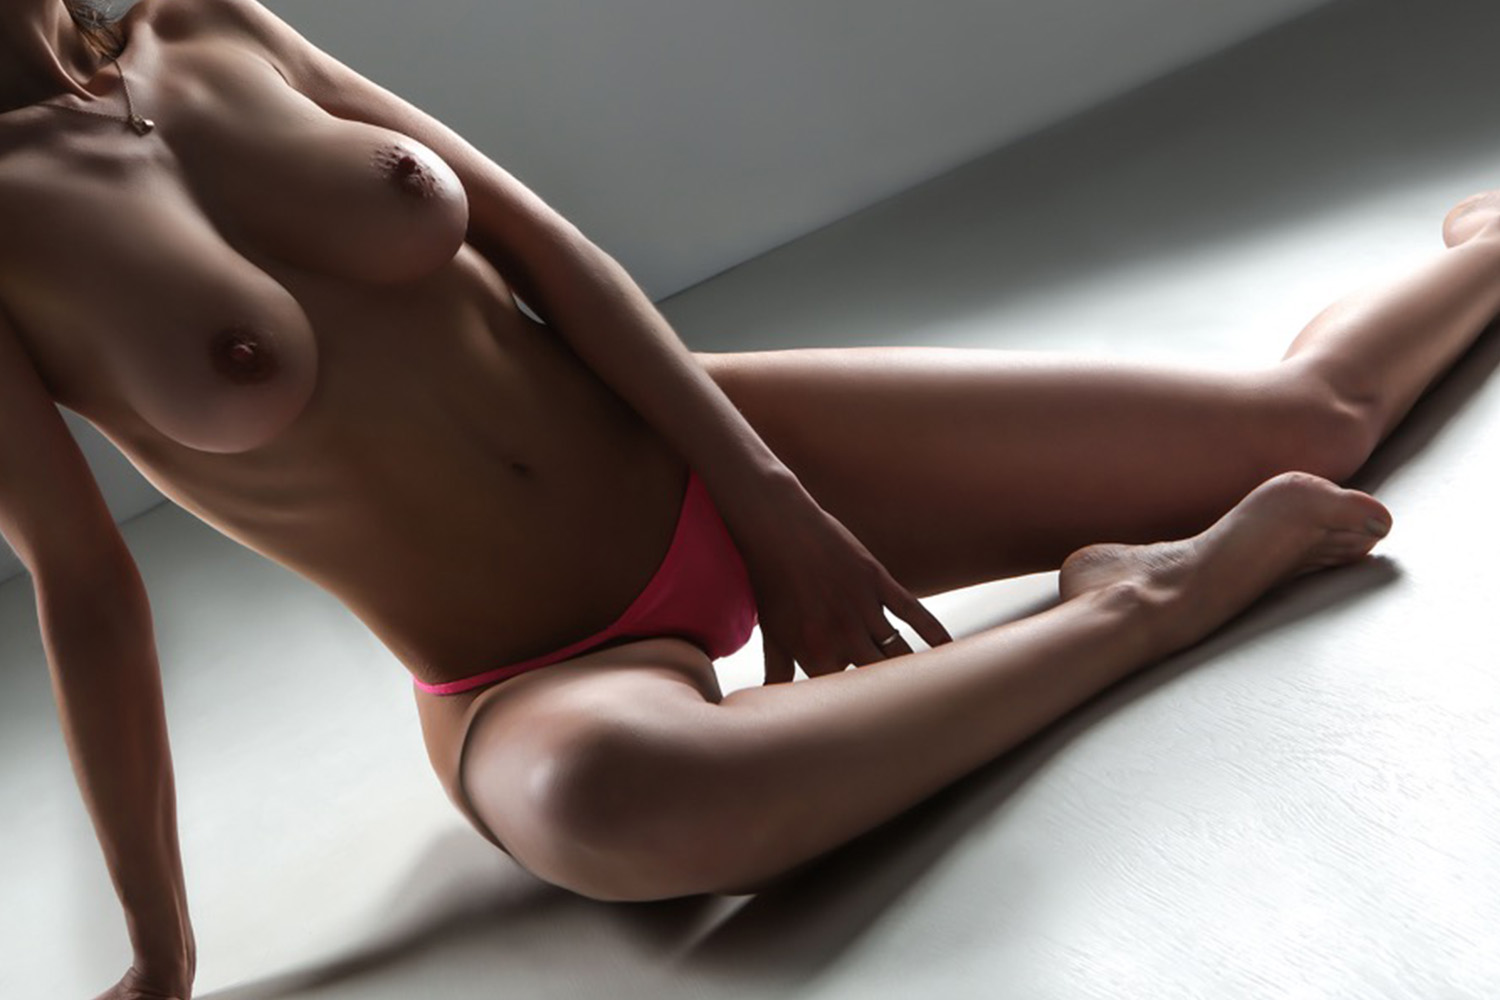 bale escorte, bale escort agency, bale escortes